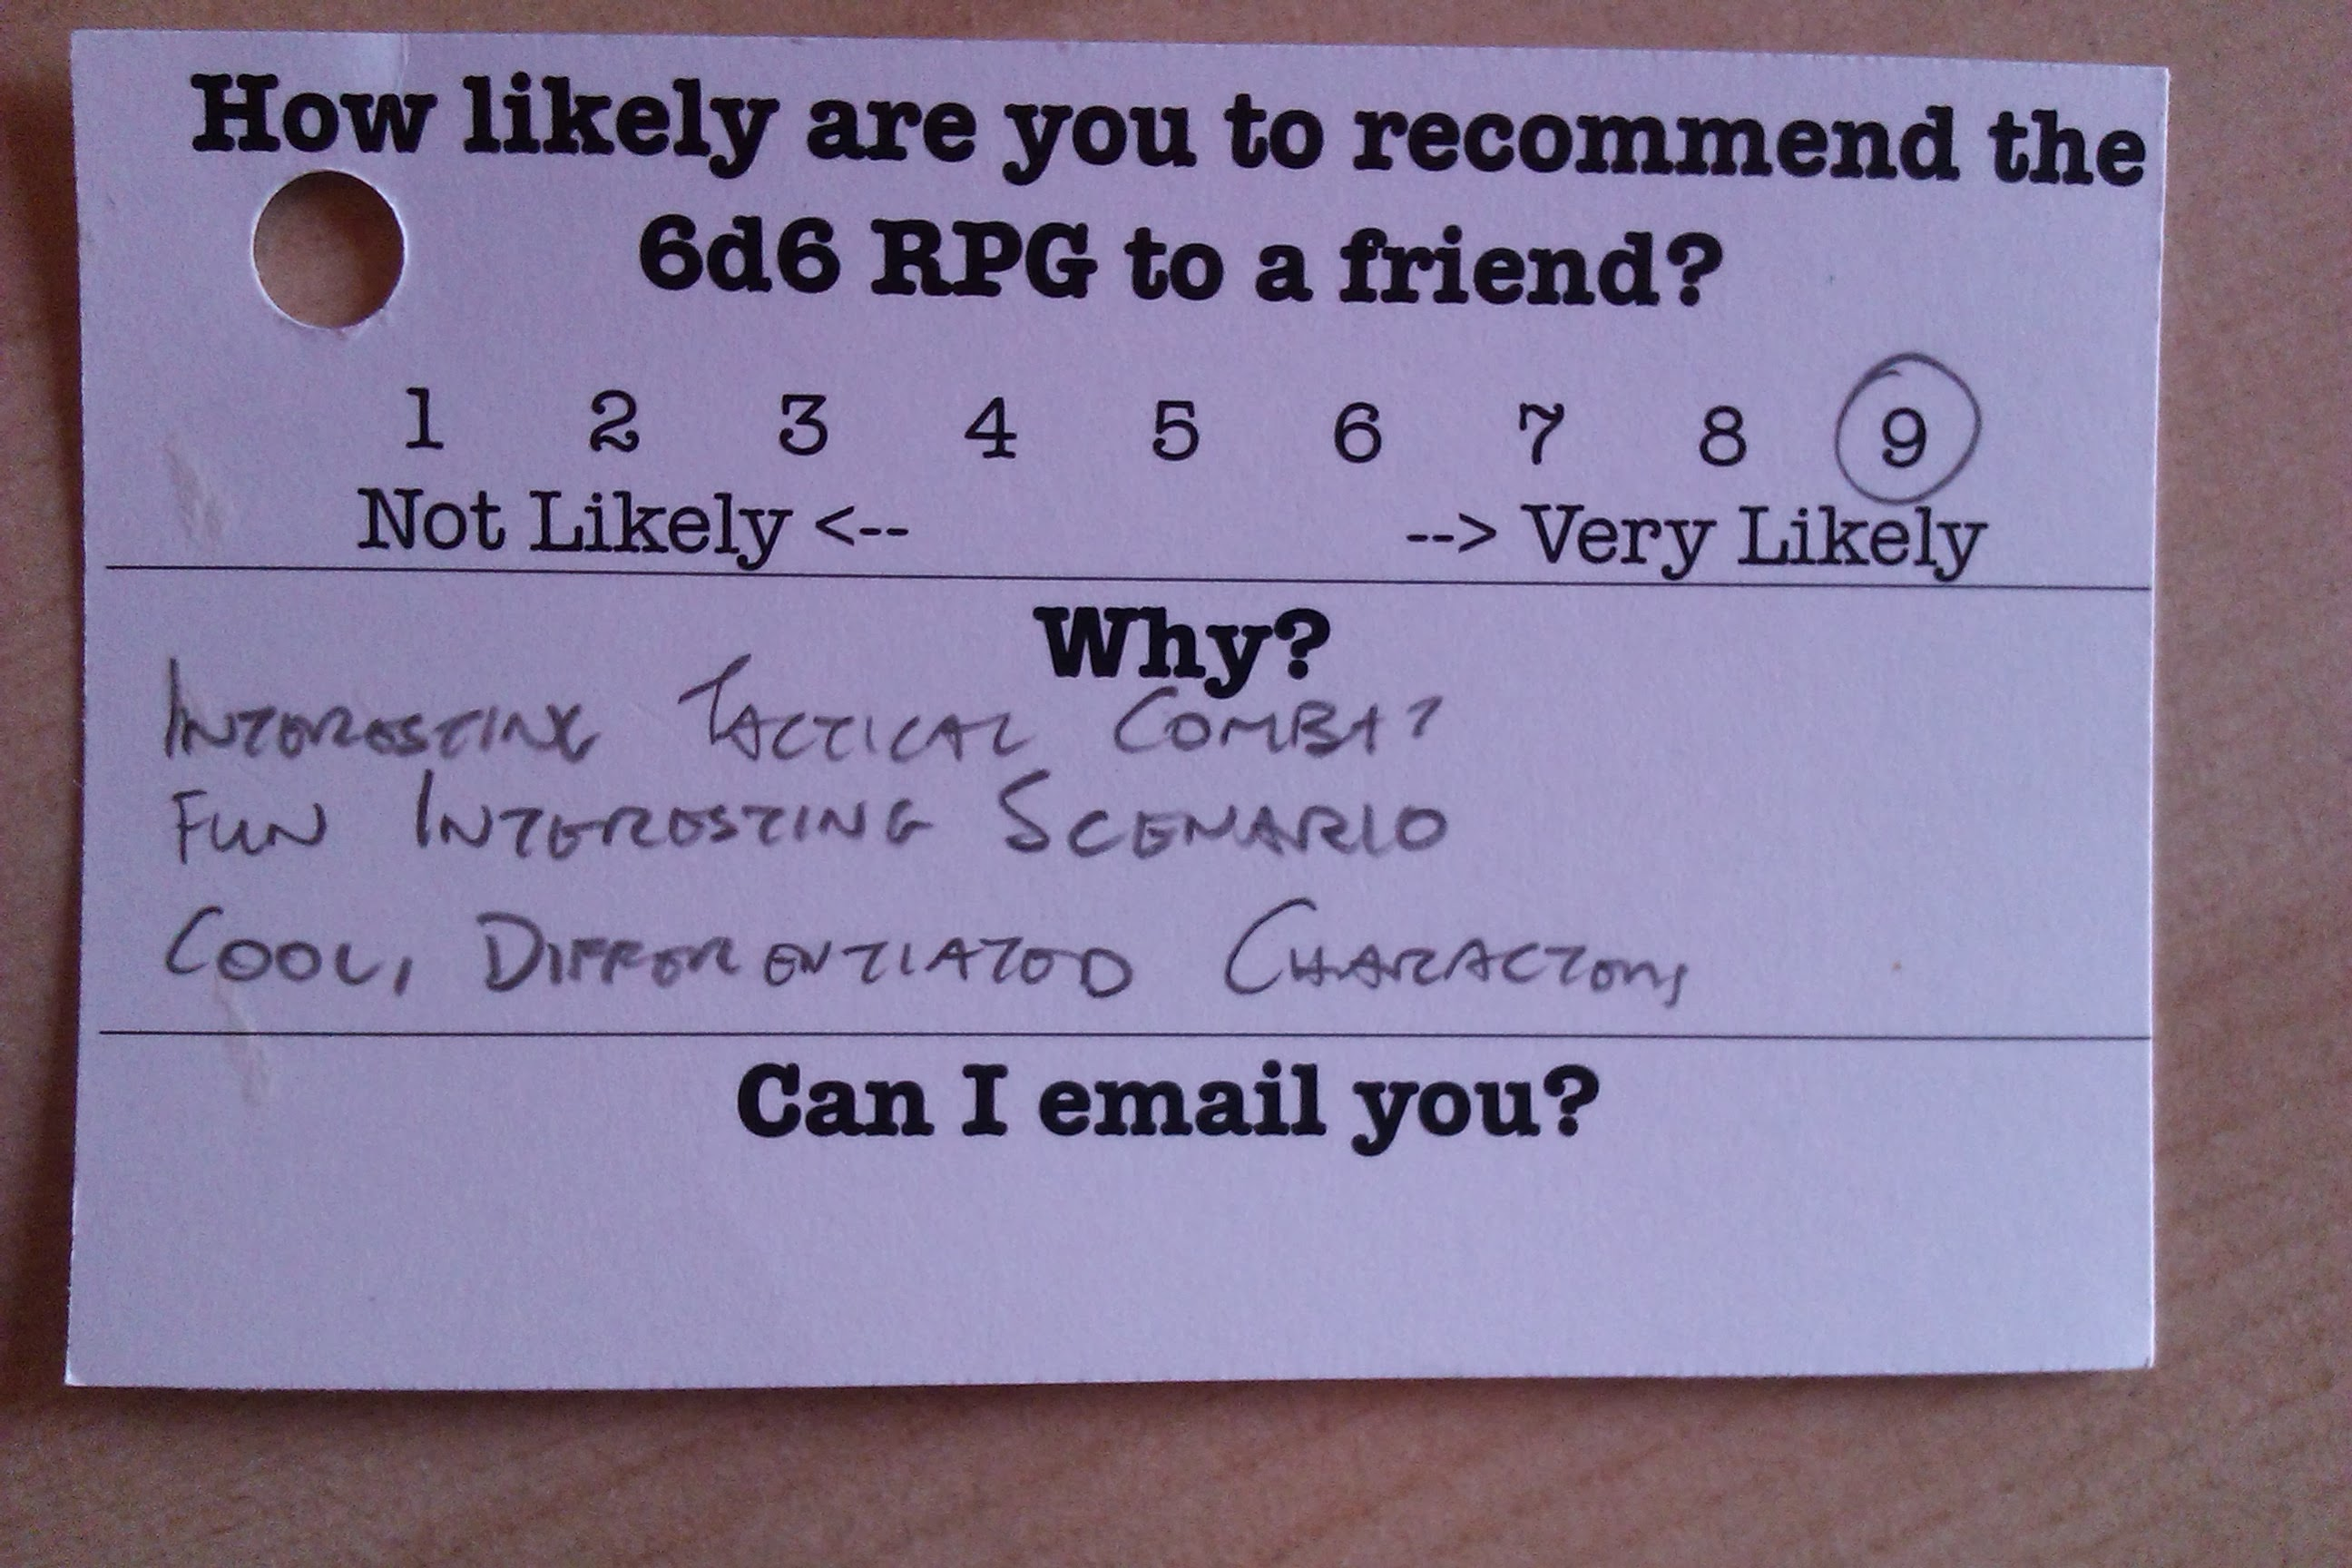 Feedback card from playtesting